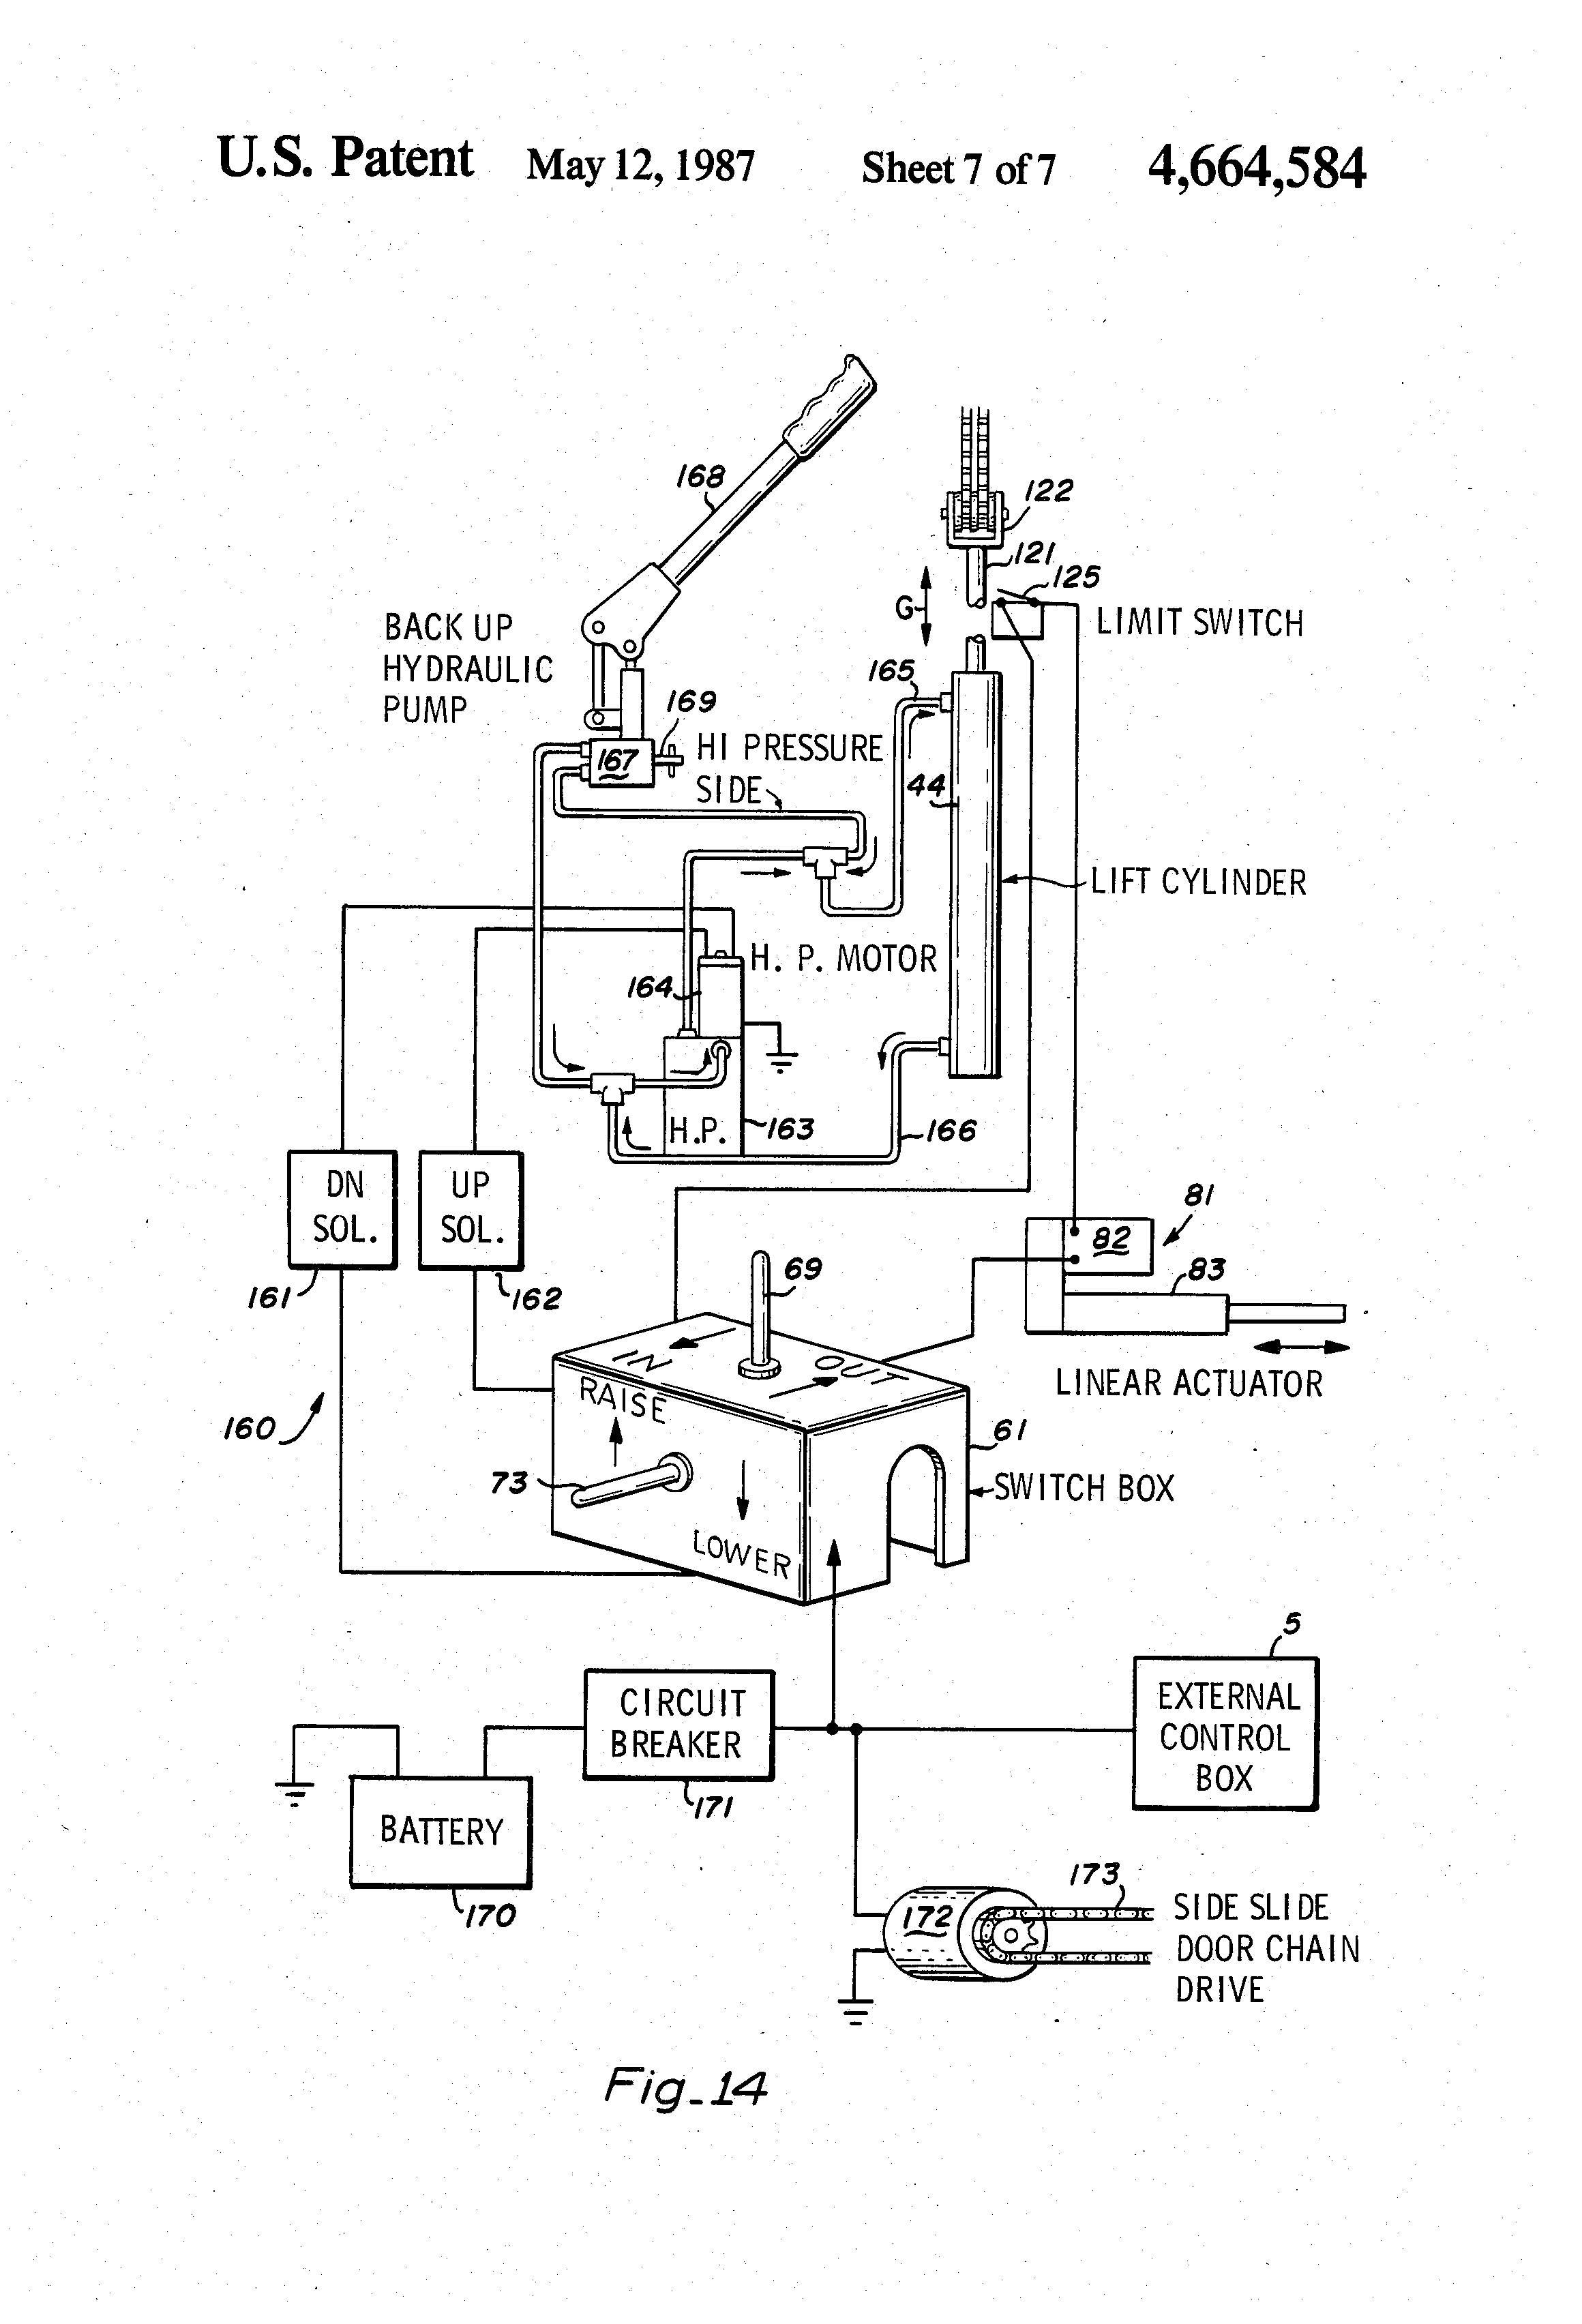 Waltco Wiring Diagram on rotary lift switch wiring diagram